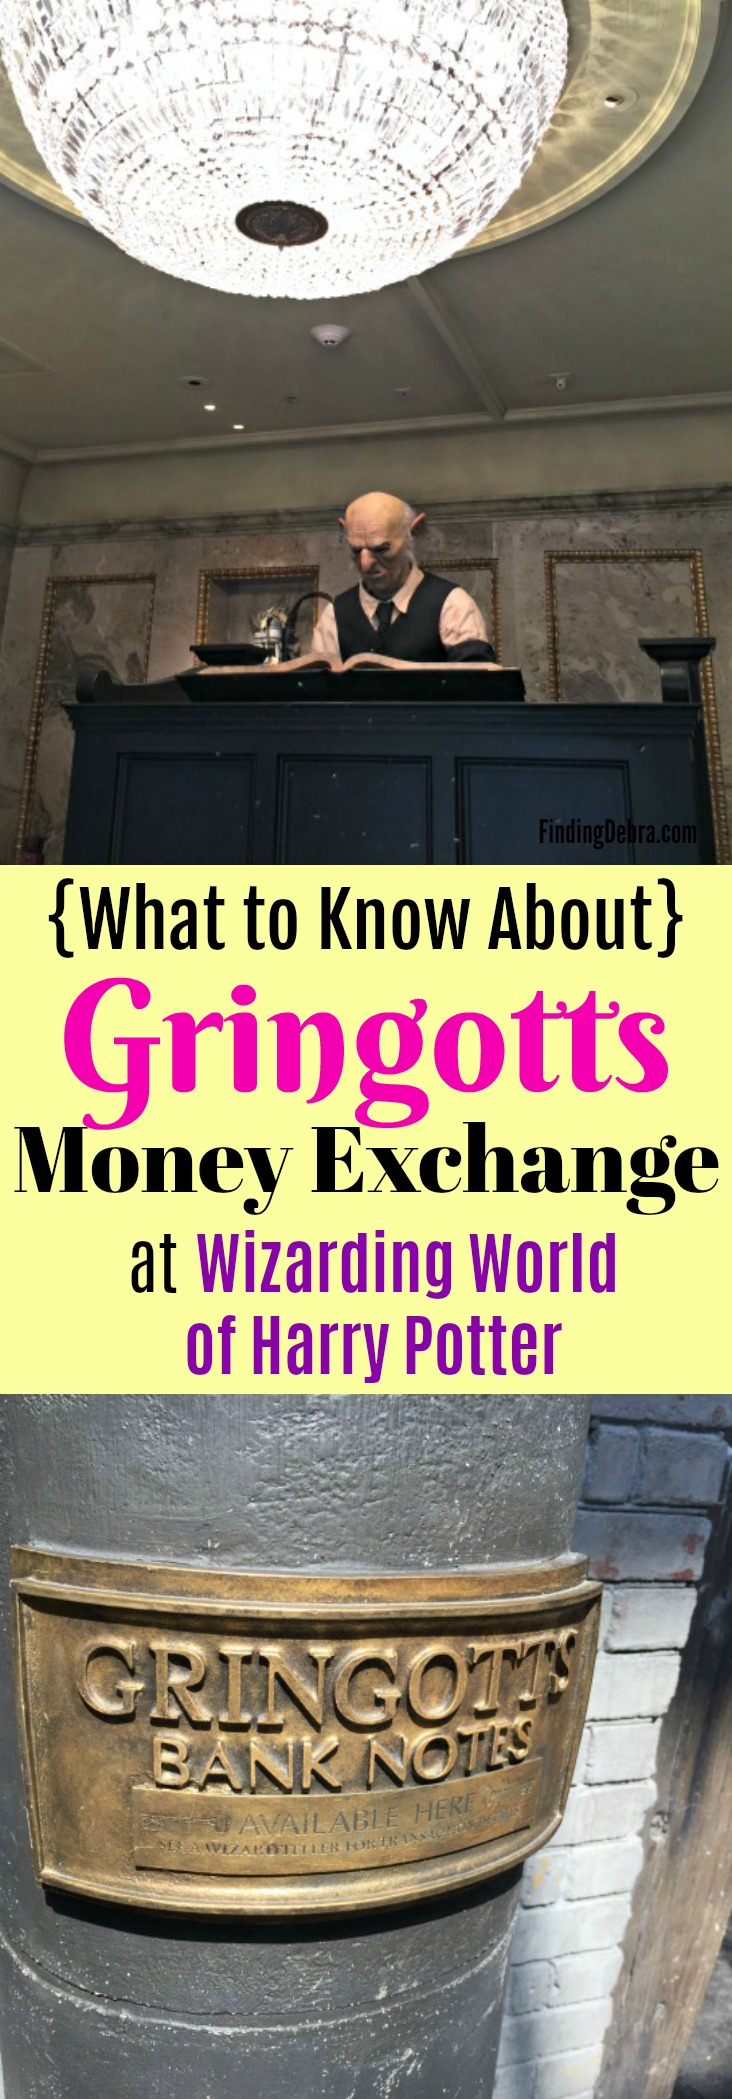 Gringotts Money Exchange - what to know about this unique experience at Universal Studios Orlando in the Wizarding World of Harry Potter (Diagon Alley)